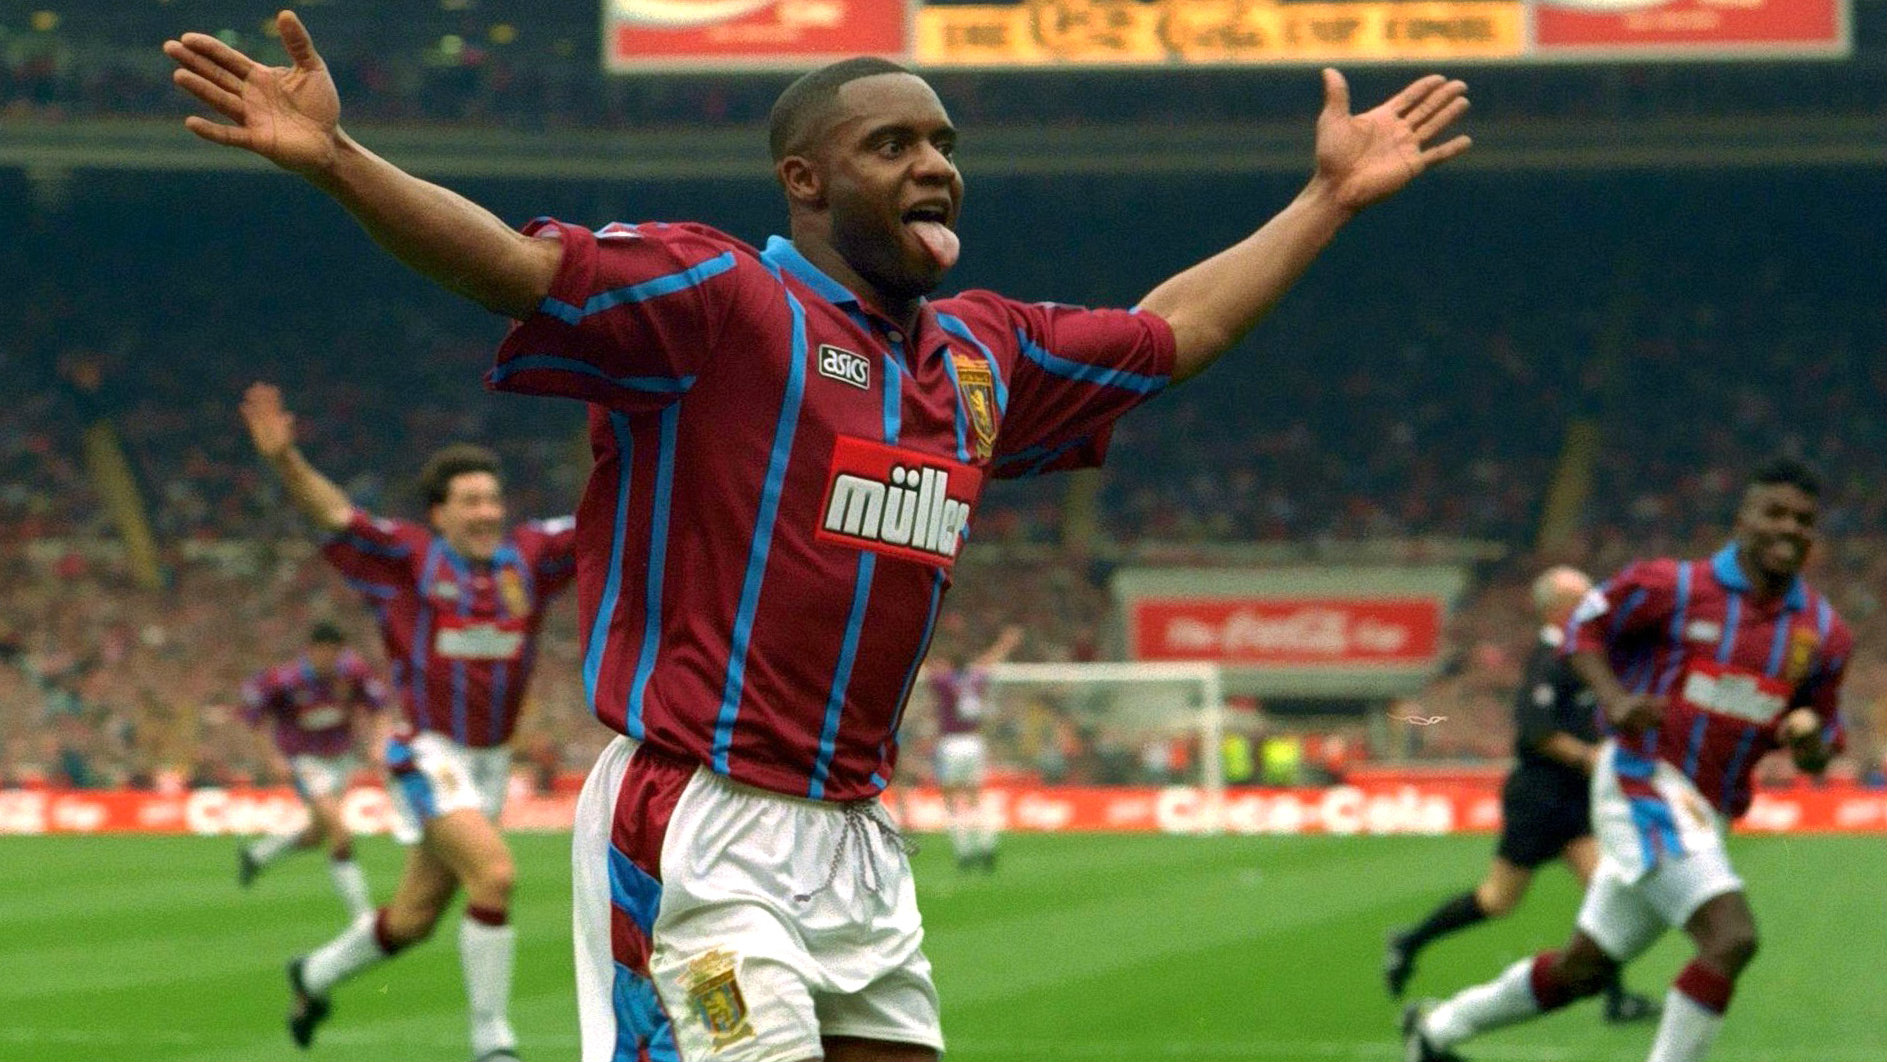 Dalian Atkinson (1968-2016) scoring in the FA Cup final for Aston Villa.